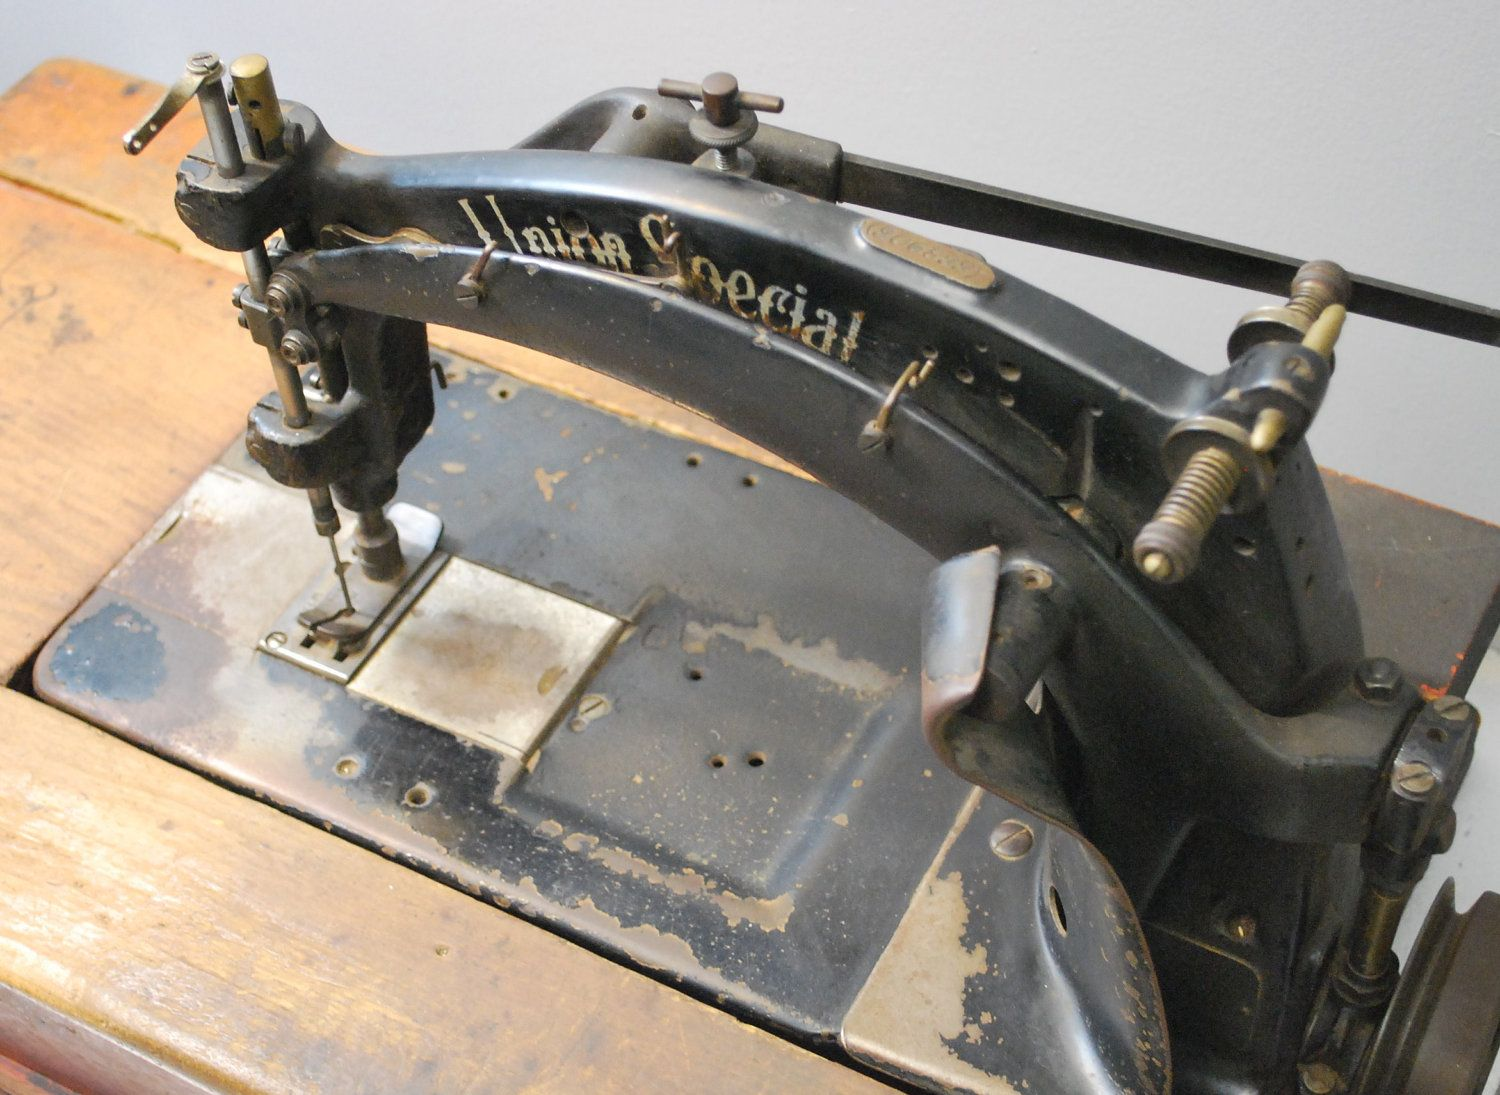 Are not Vintage sewing machine union special